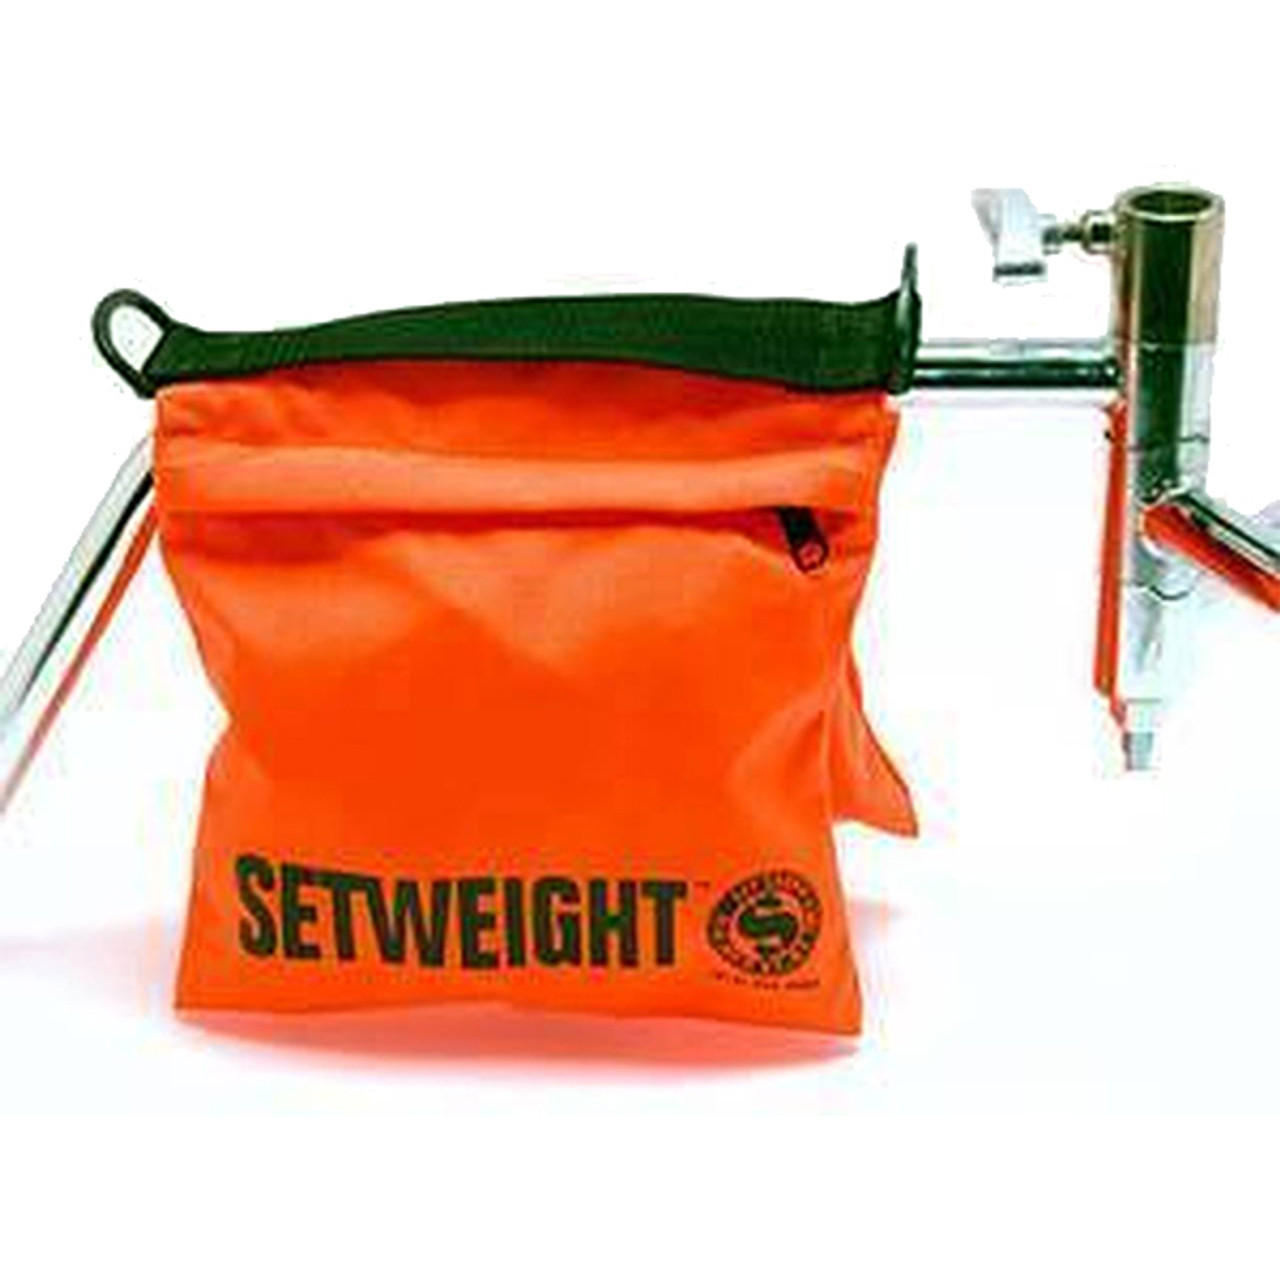 Setweight - 22 lb Sandbag (Orange)